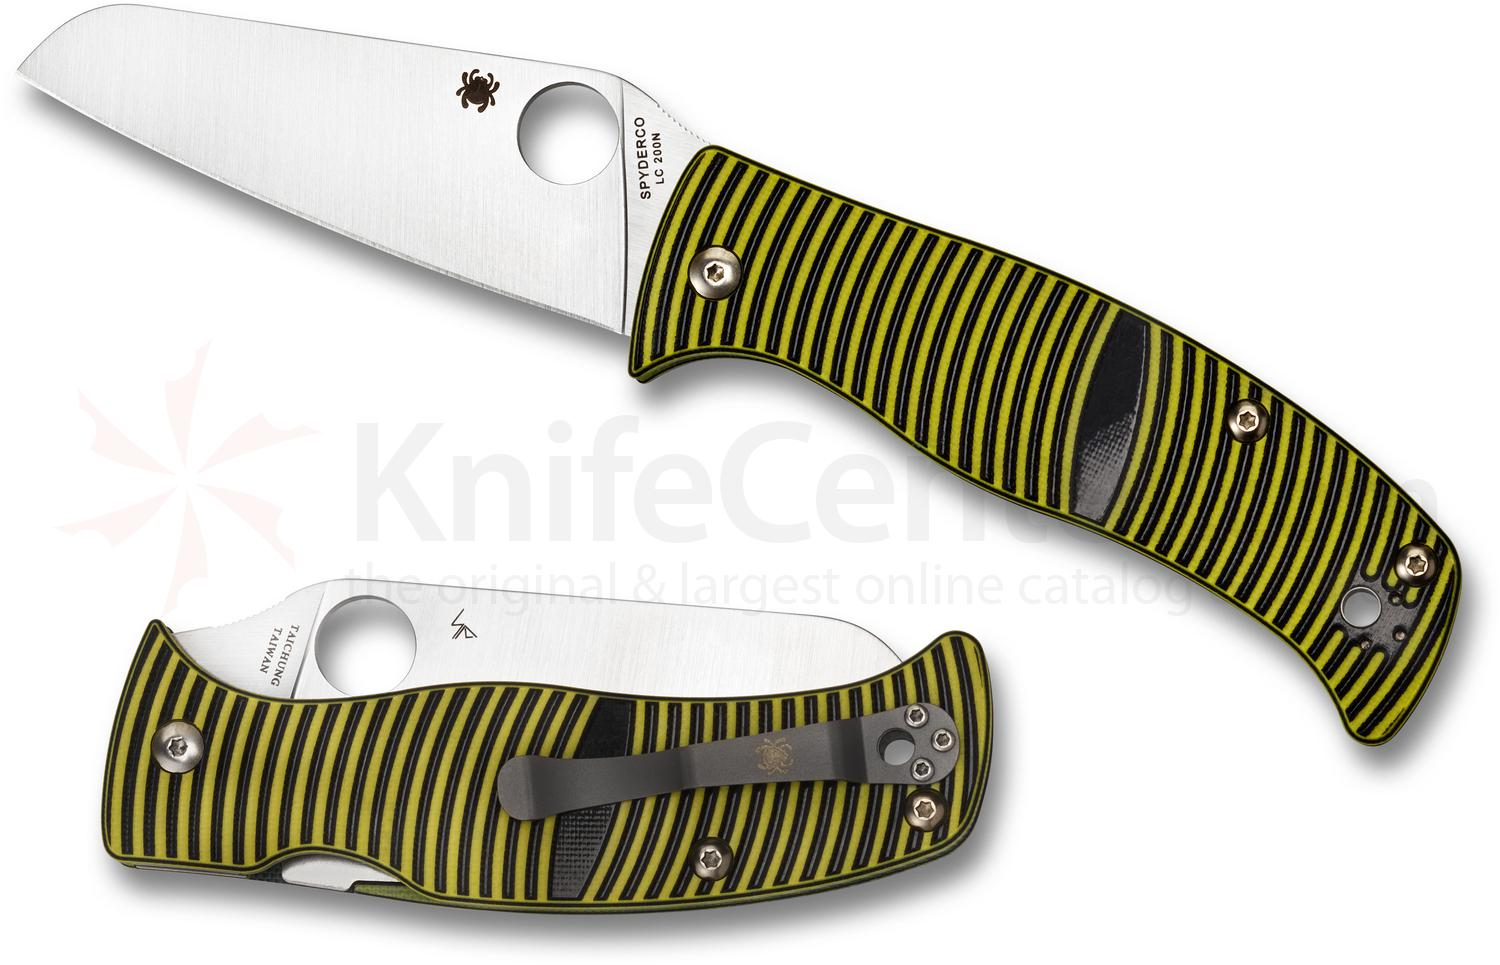 Spyderco C217GPSF Caribbean Folding Knife 3.7 inch Rustproof LC200N Sheepsfoot Plain Blade, 3D Machined G10 Handles